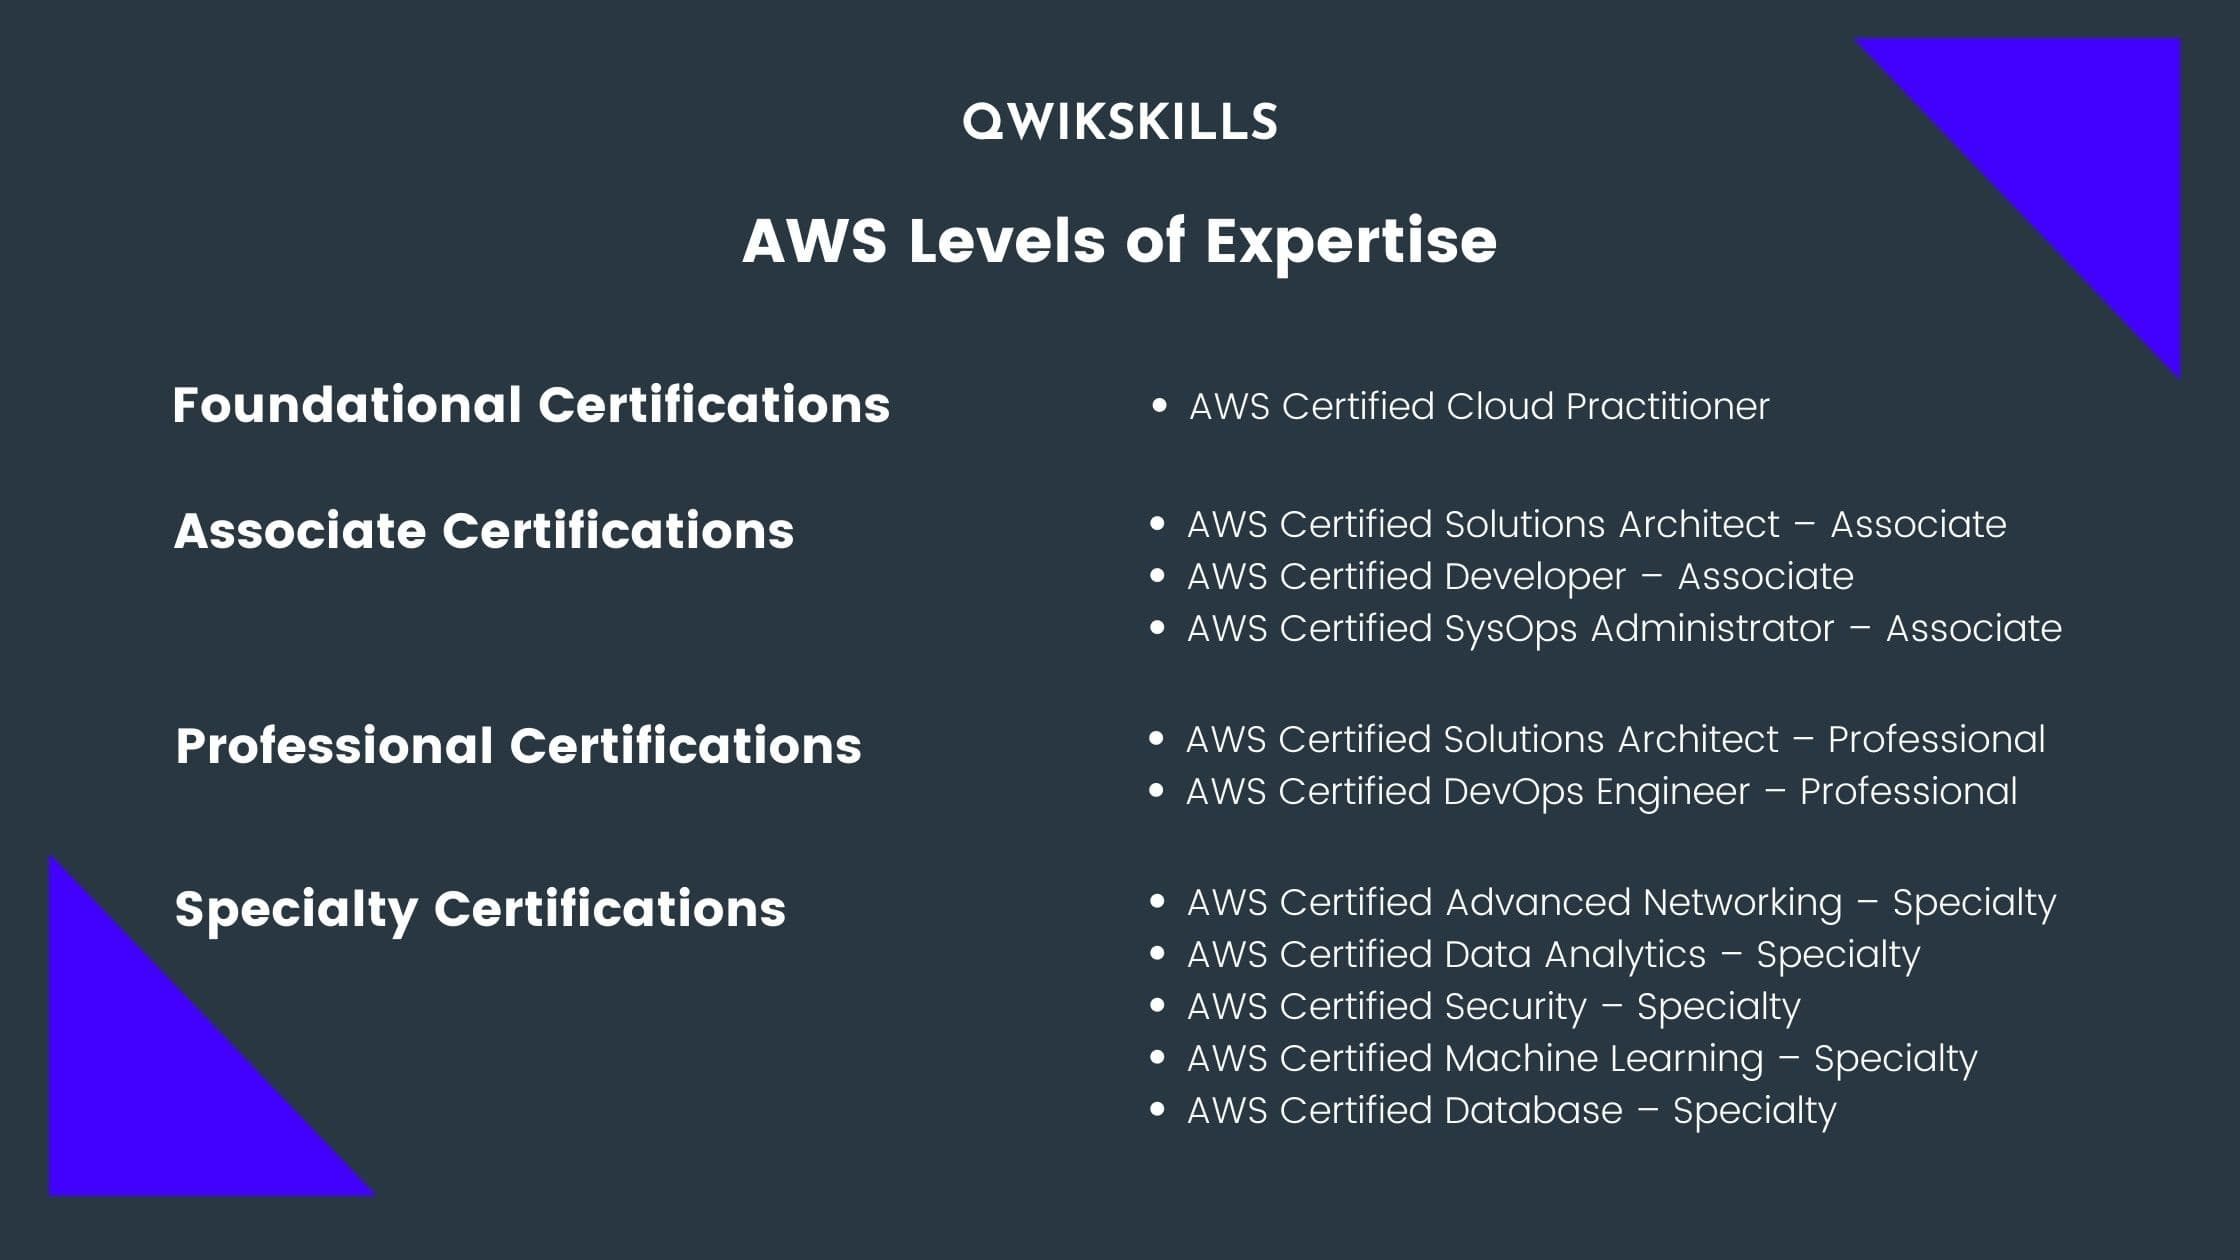 AWS Levels of Expertise